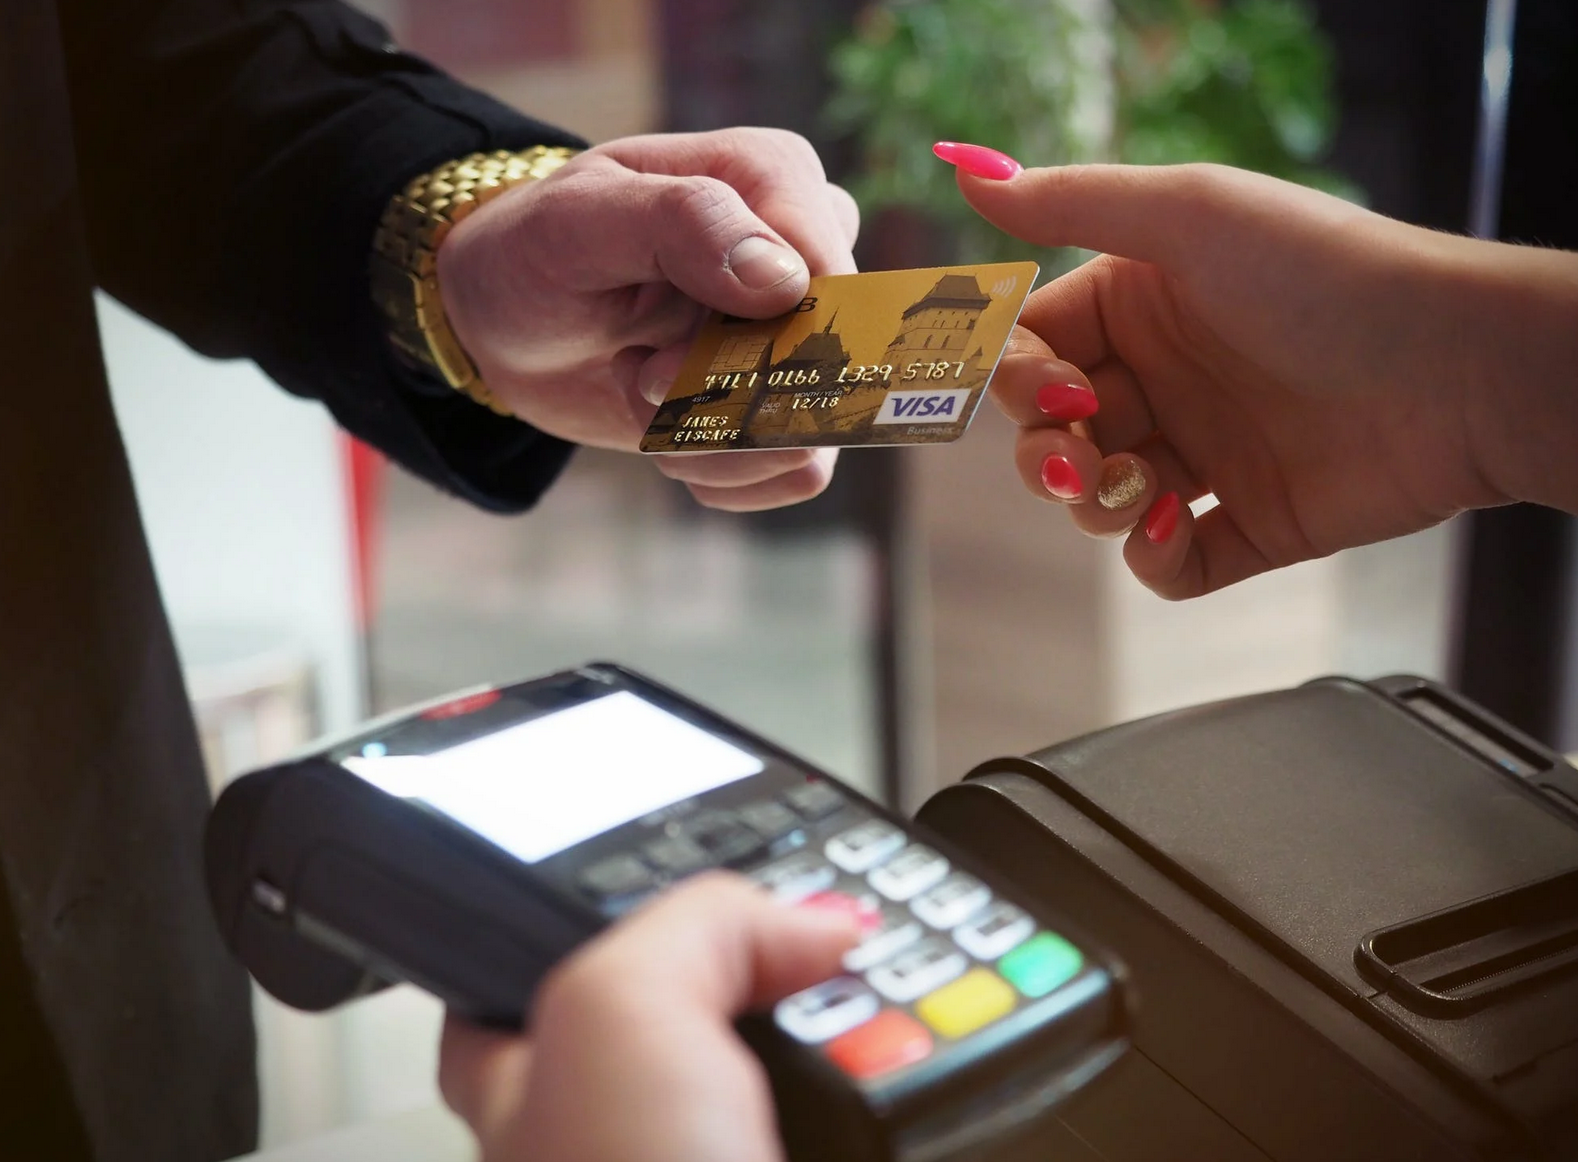 Managing a huge volume of transactions can be challenging for ecommerce sellers